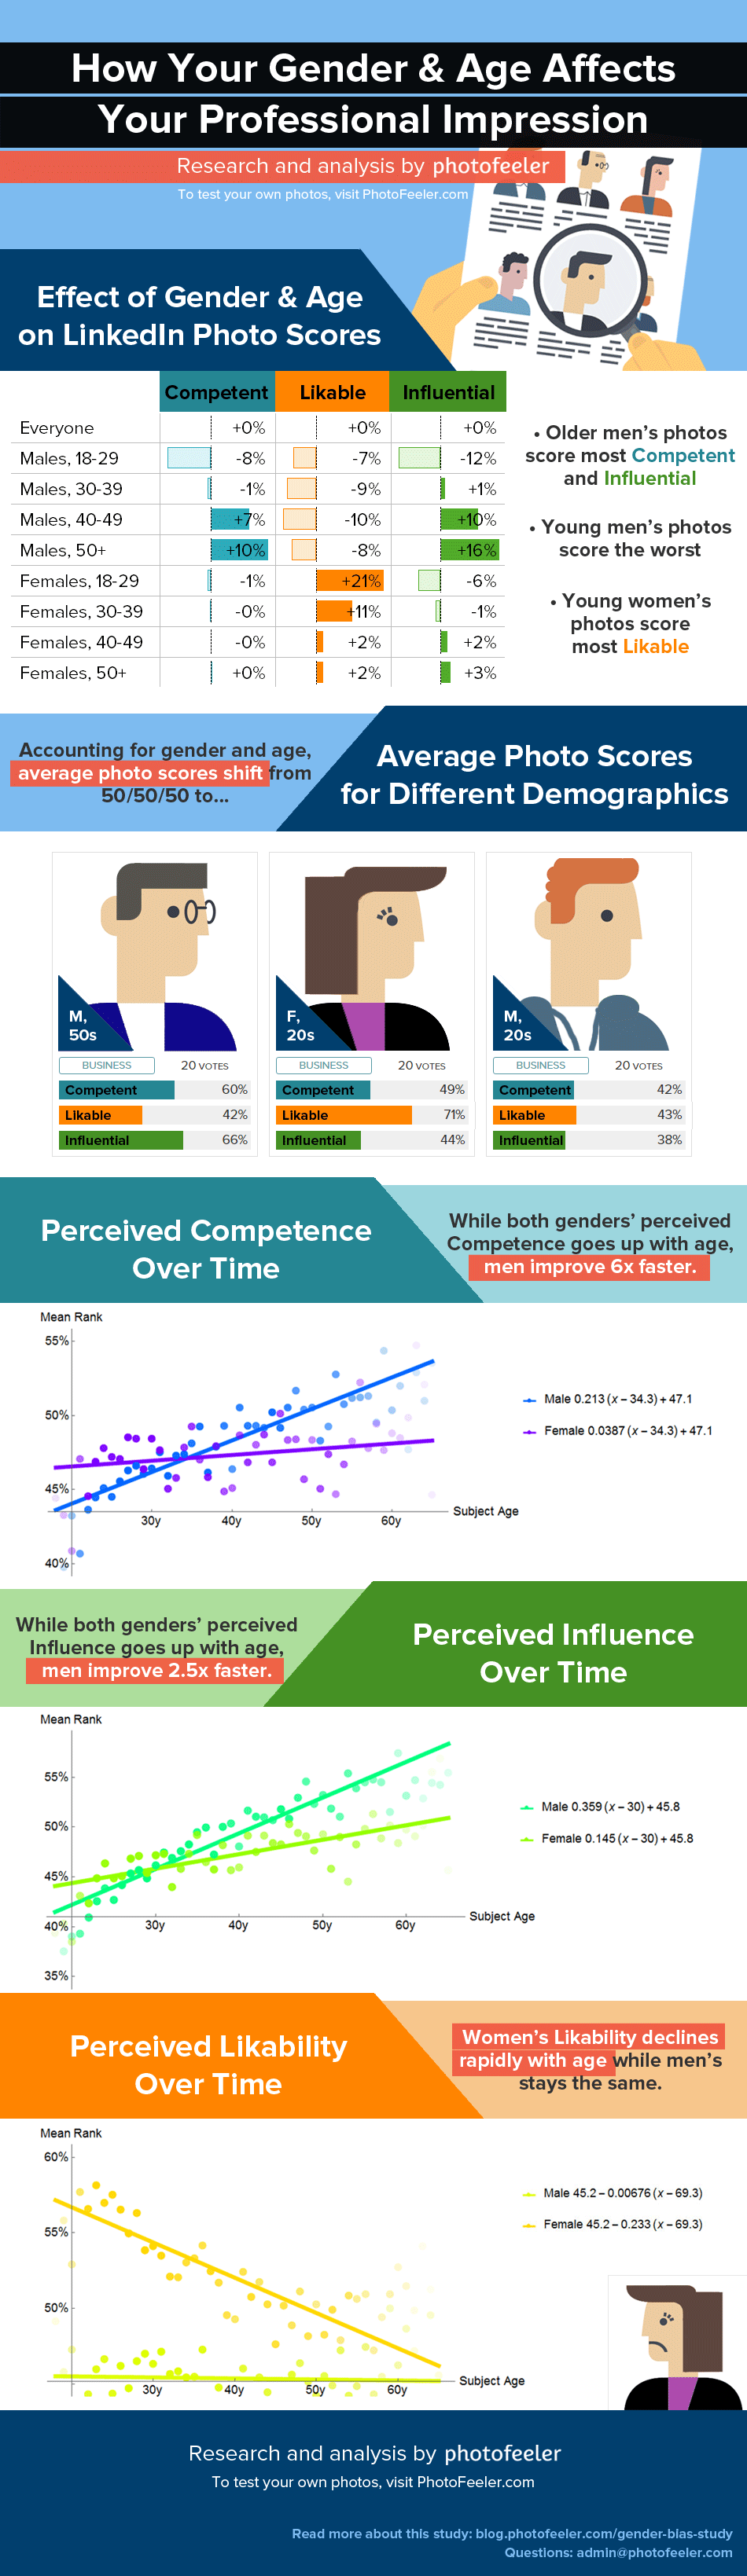 How Your Gender and Age Affects Your Professional Impression Photofeeler Research Infographic